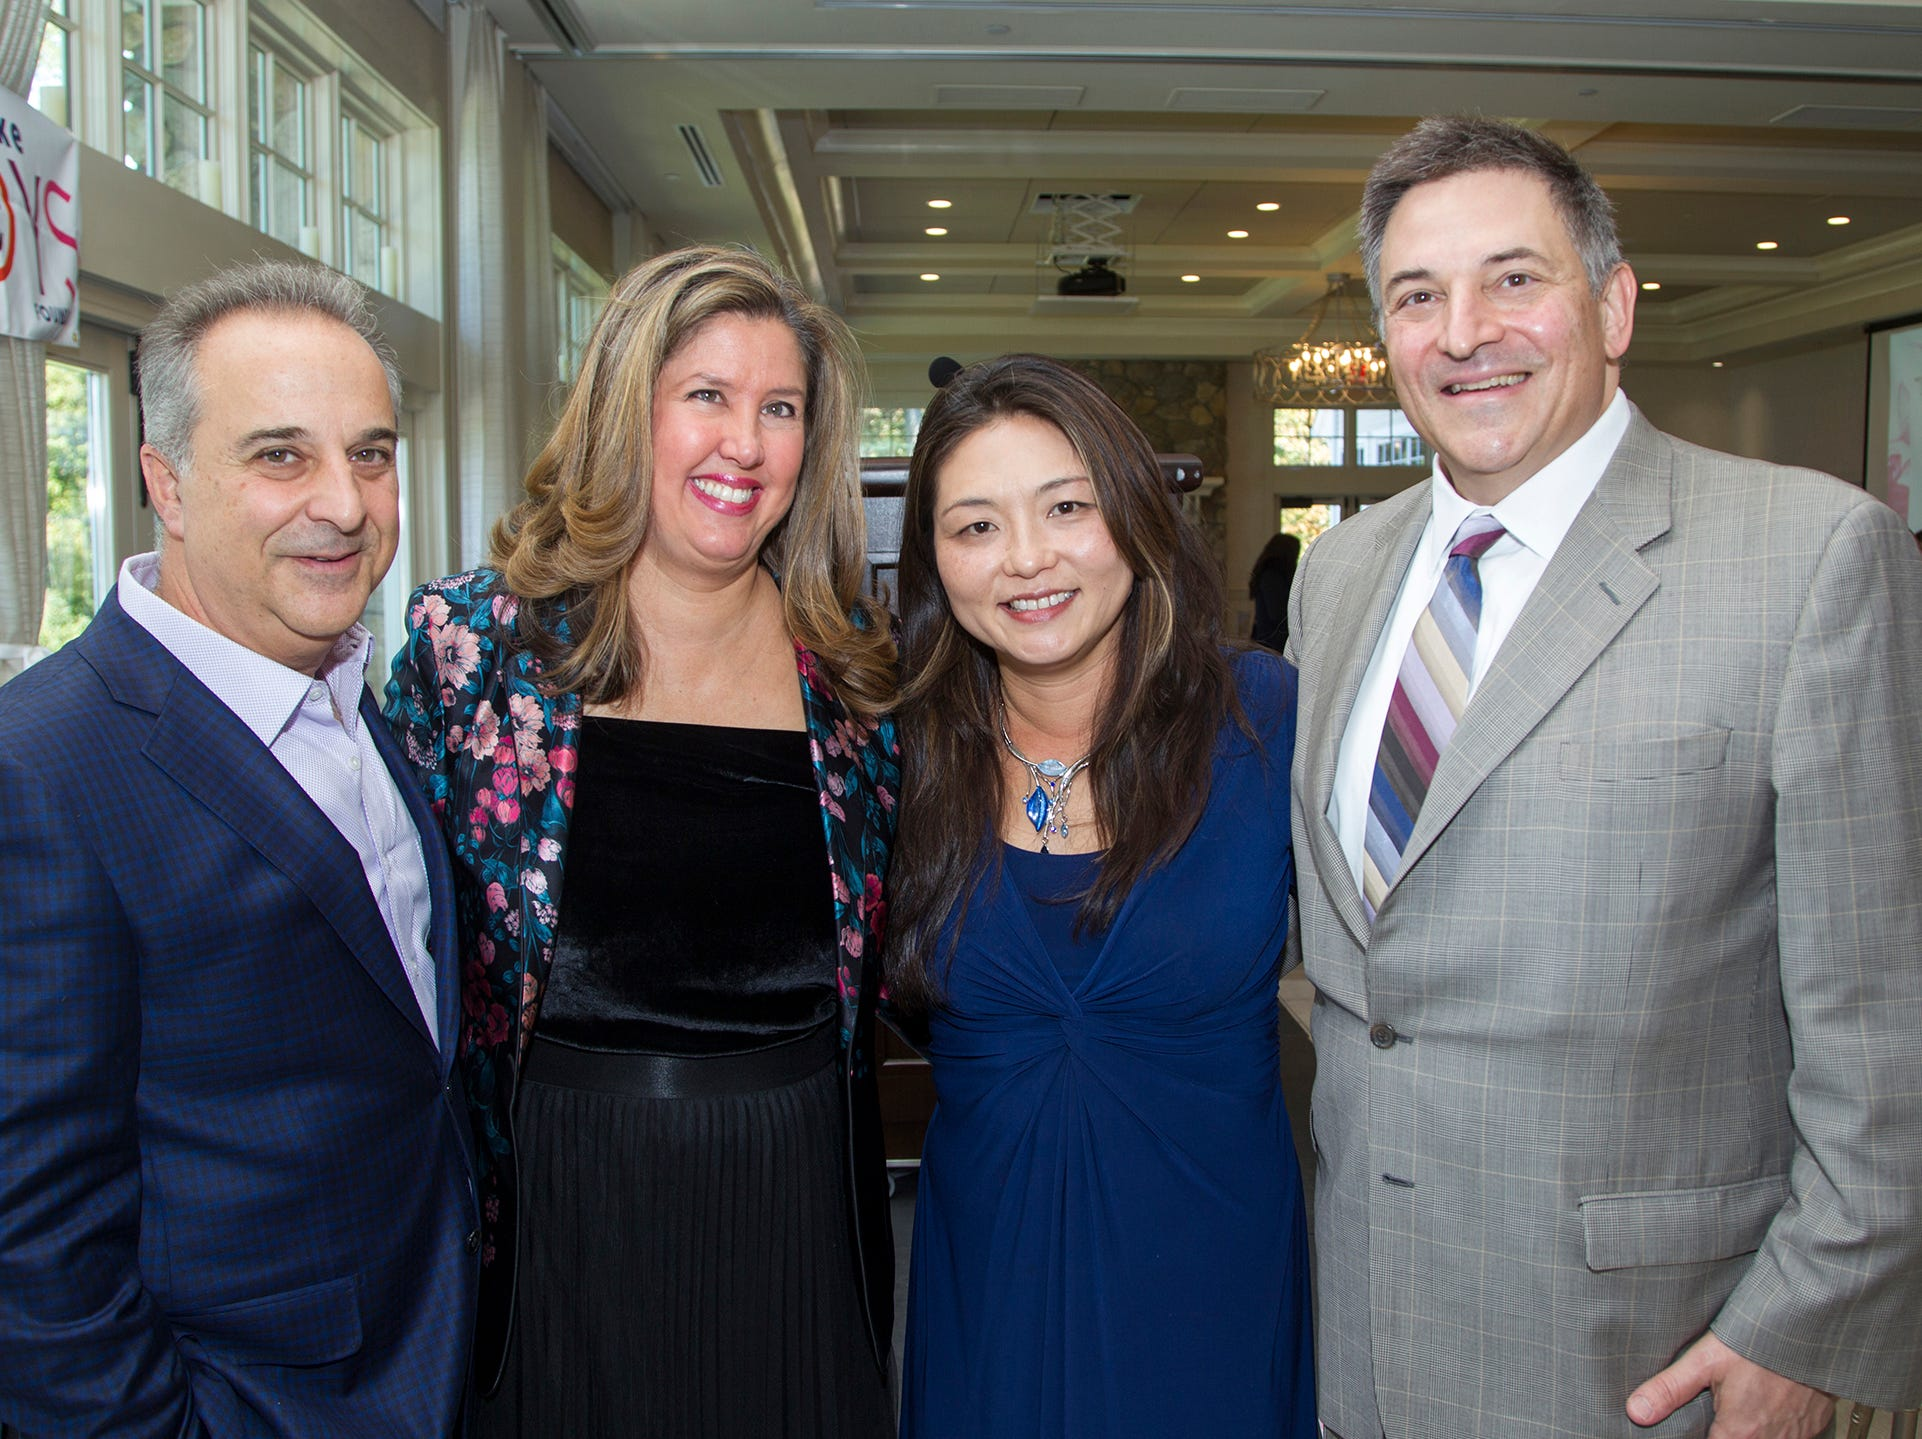 John and Paulette Laurenzi, Kara Song, Dr. Michael Gentile. Spring Lake Toys Foundation held its 3rd annual fundraising gala luncheon at Indian Trail Club in Franklin Lakes. The luncheon fundraiser raises funds for children with illnesses. 10/18/2018